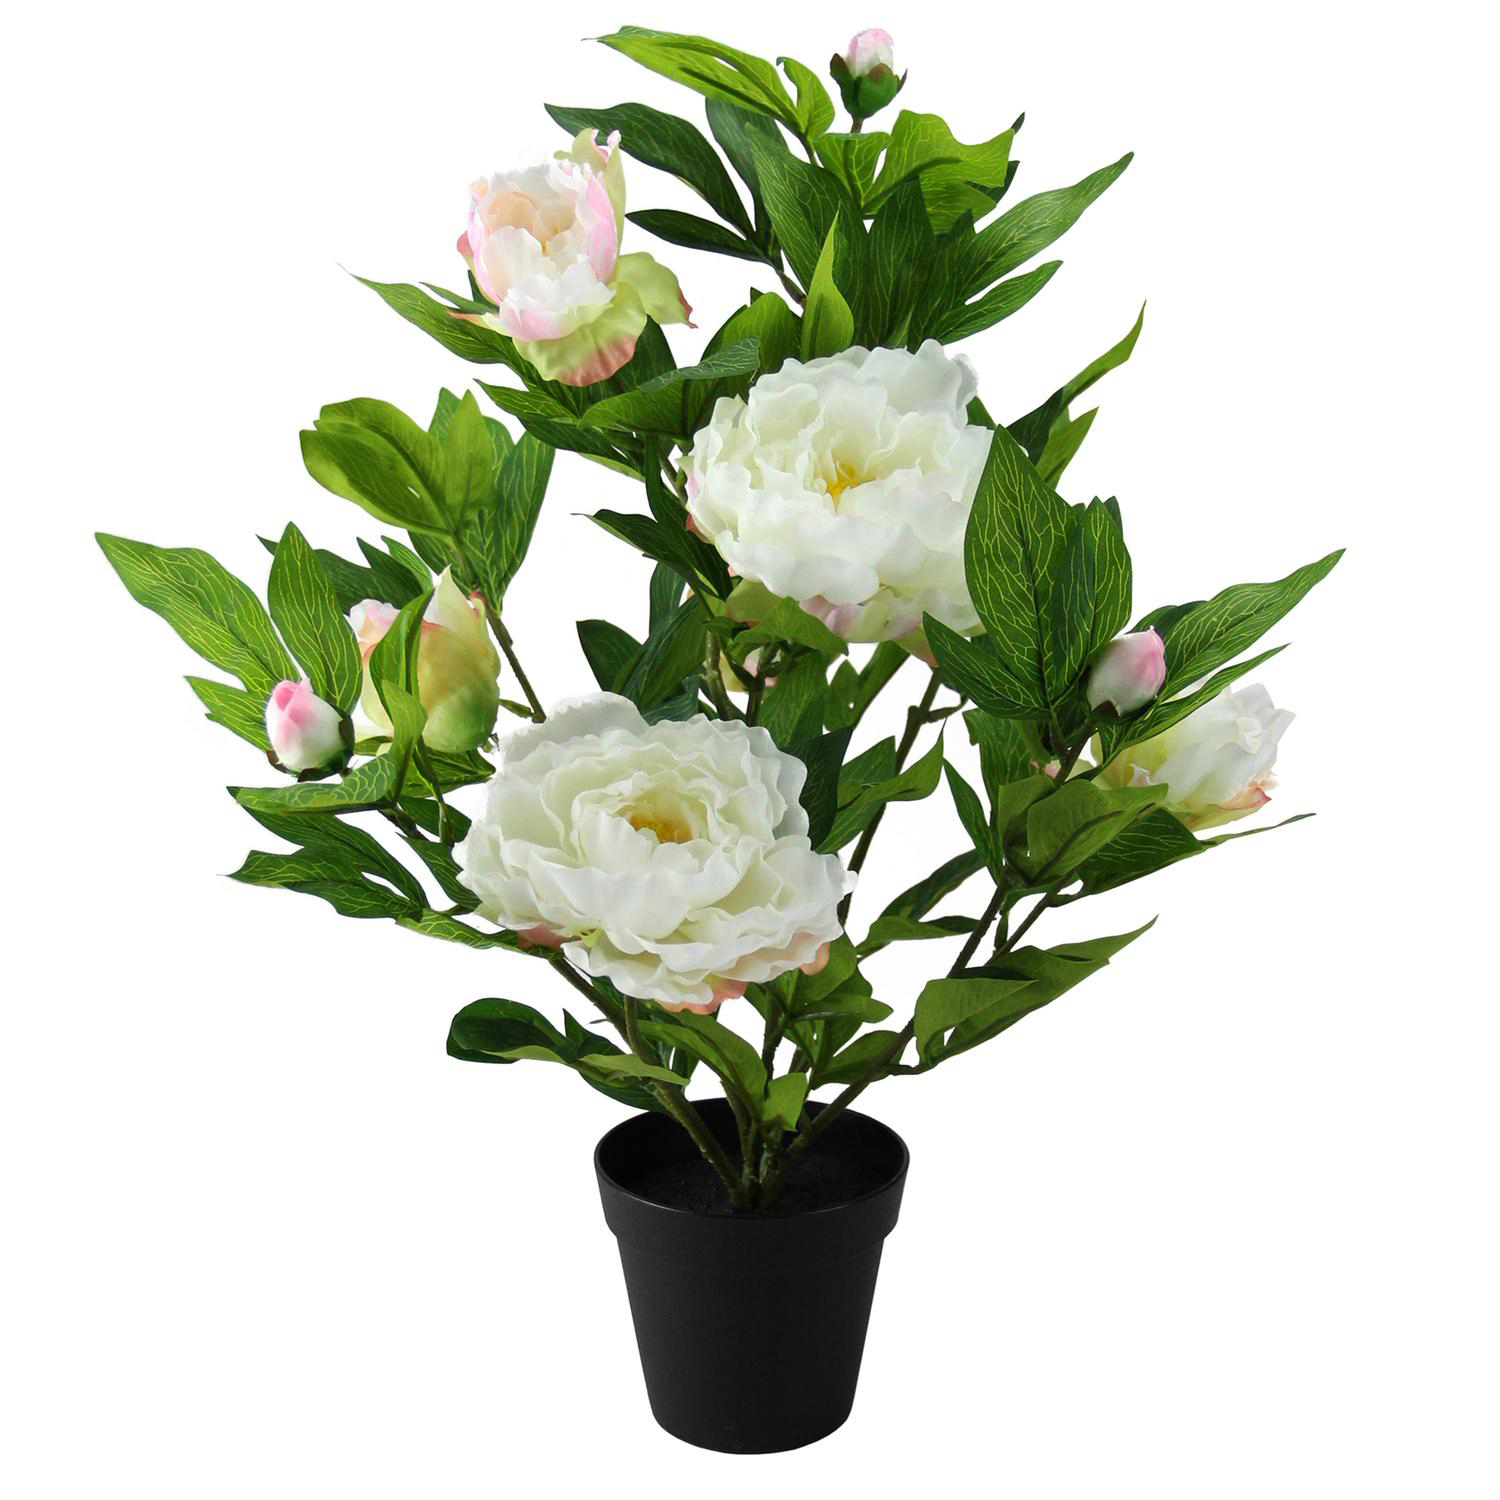 Creamy White & Pink Faux Blooming Potted Peony Plant